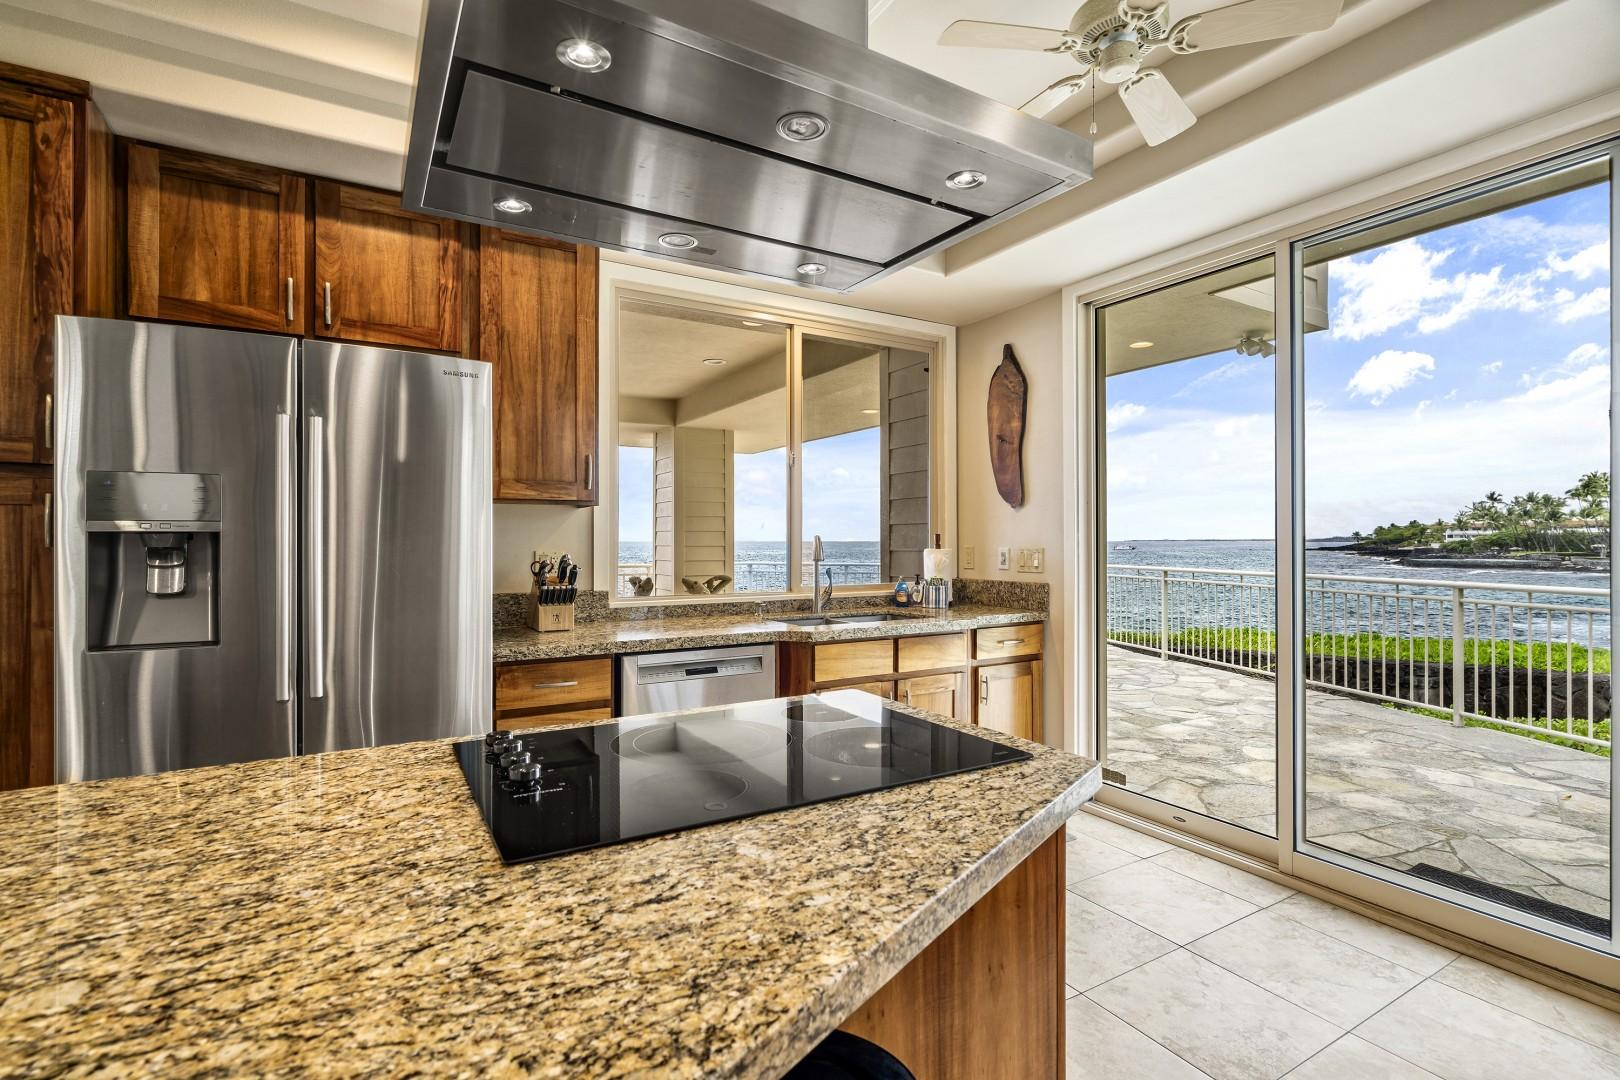 Stainless steel appliances throughout!